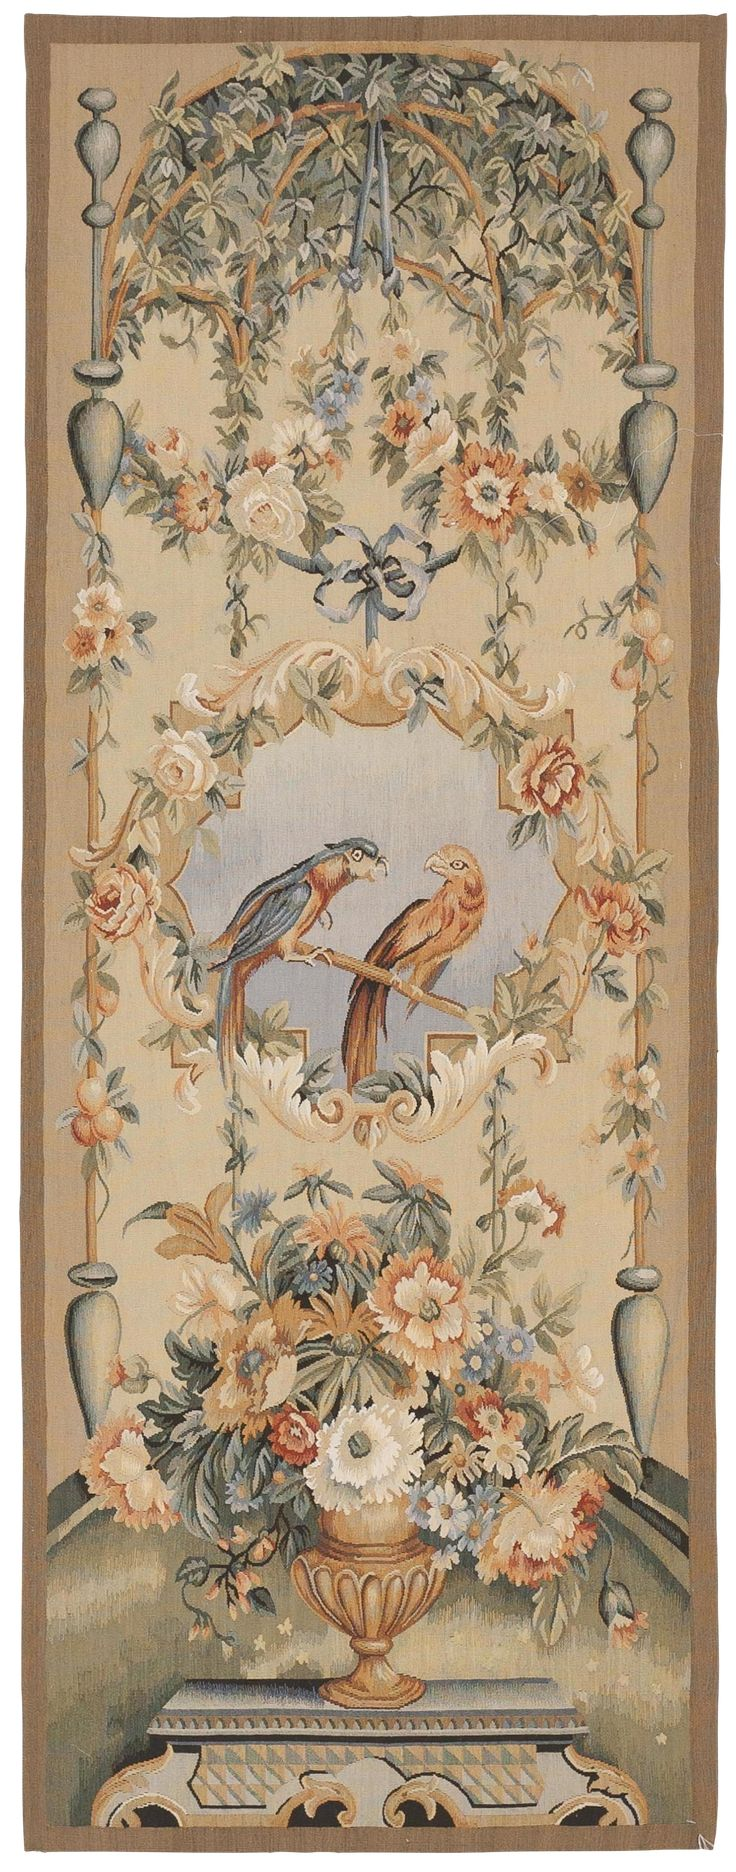 Chinese Wall Hanging Tapestry